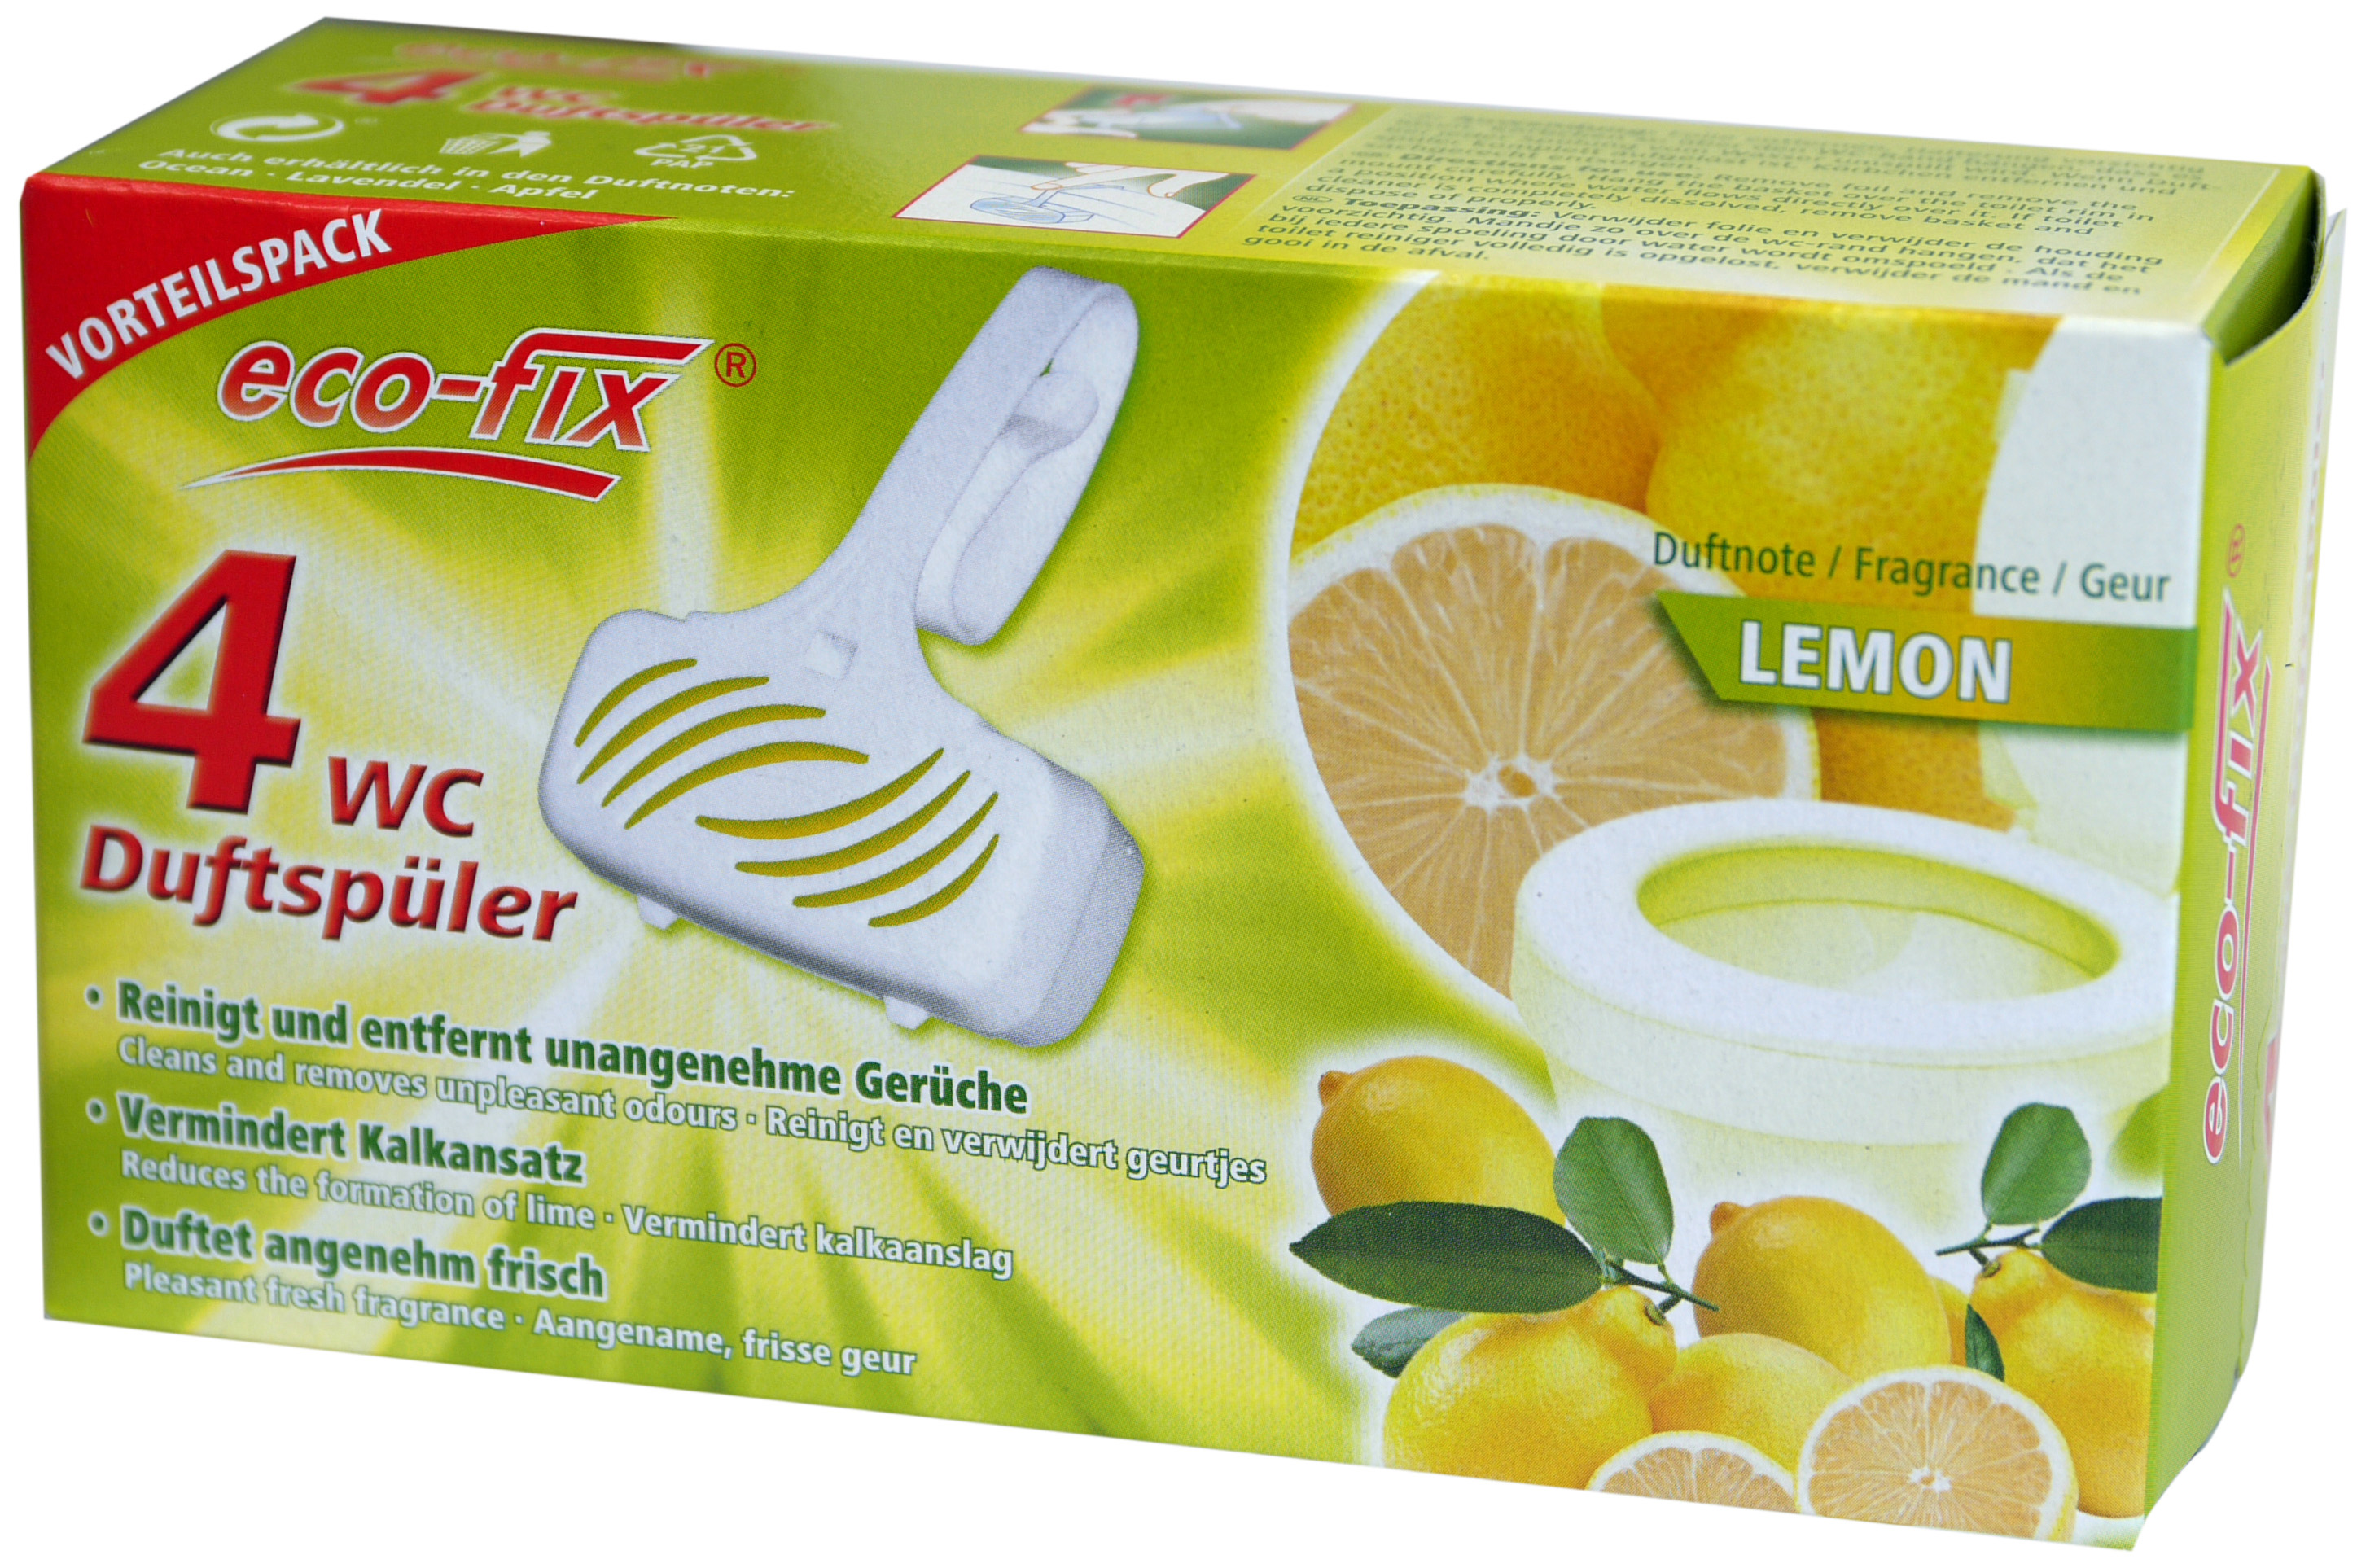 00851 - eco-fix 4er WC Duftspüler -Lemon- 4 x33g